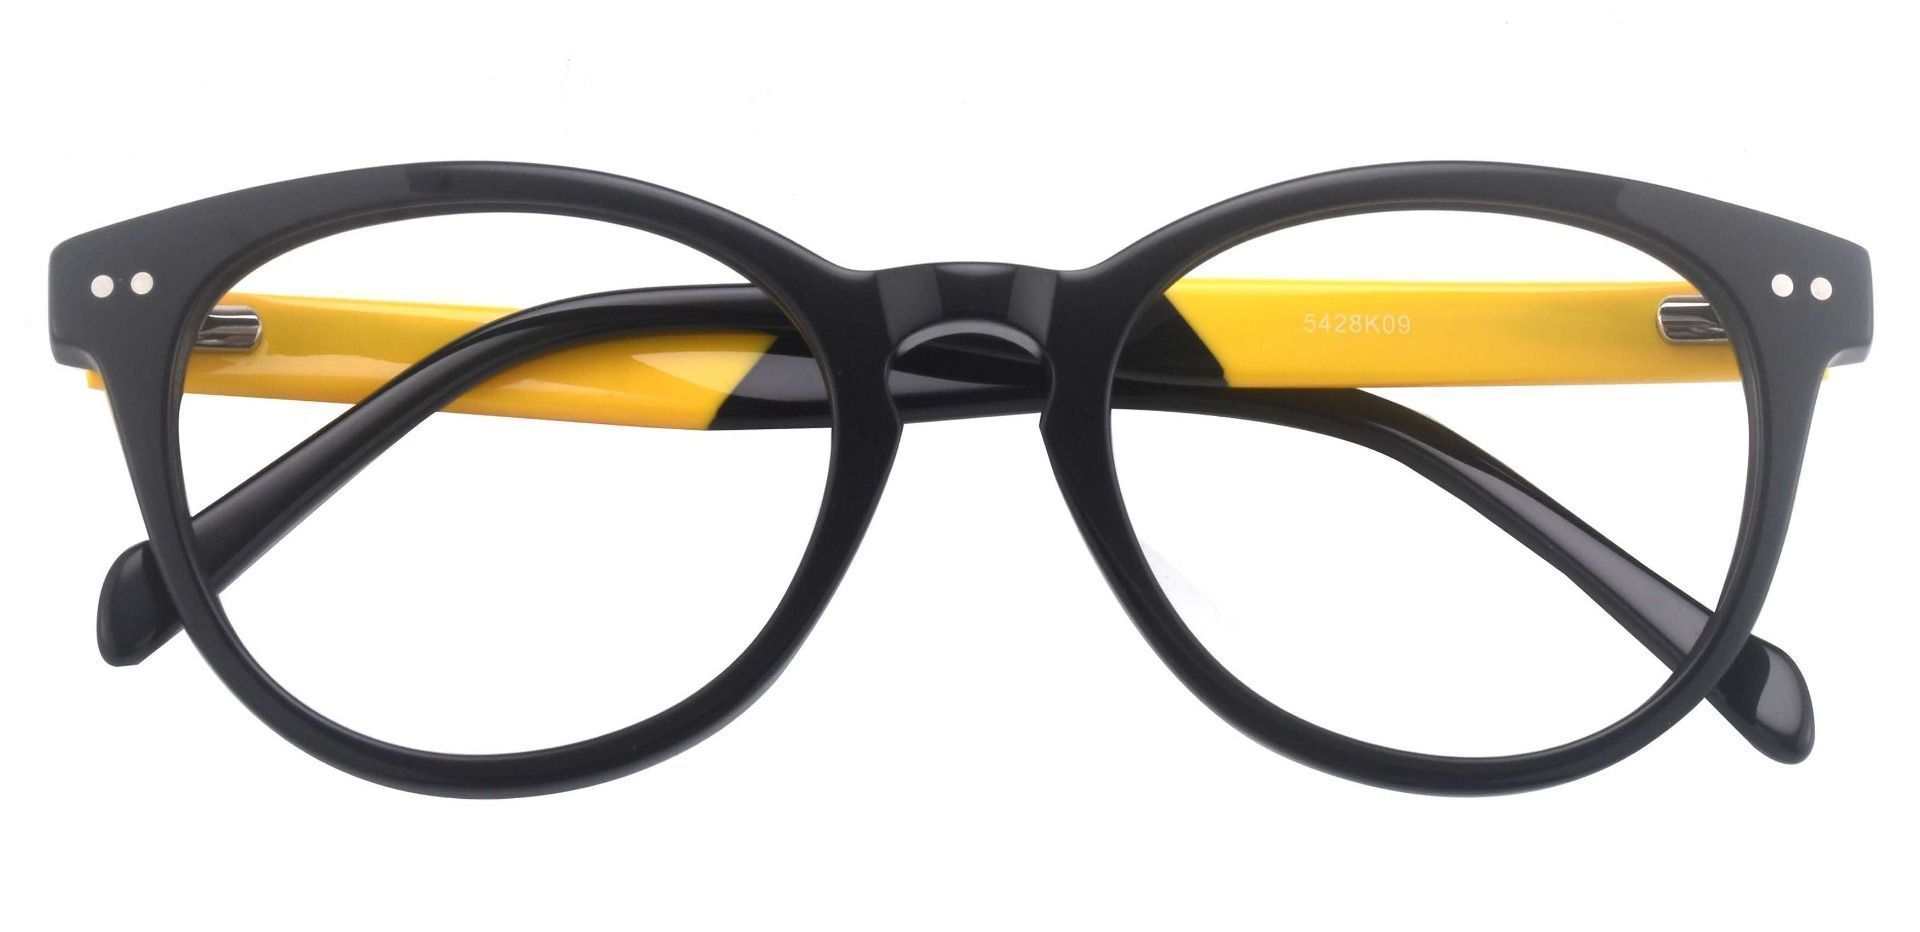 Forbes Oval Non-Rx Glasses - The Frame Is Black And Gold